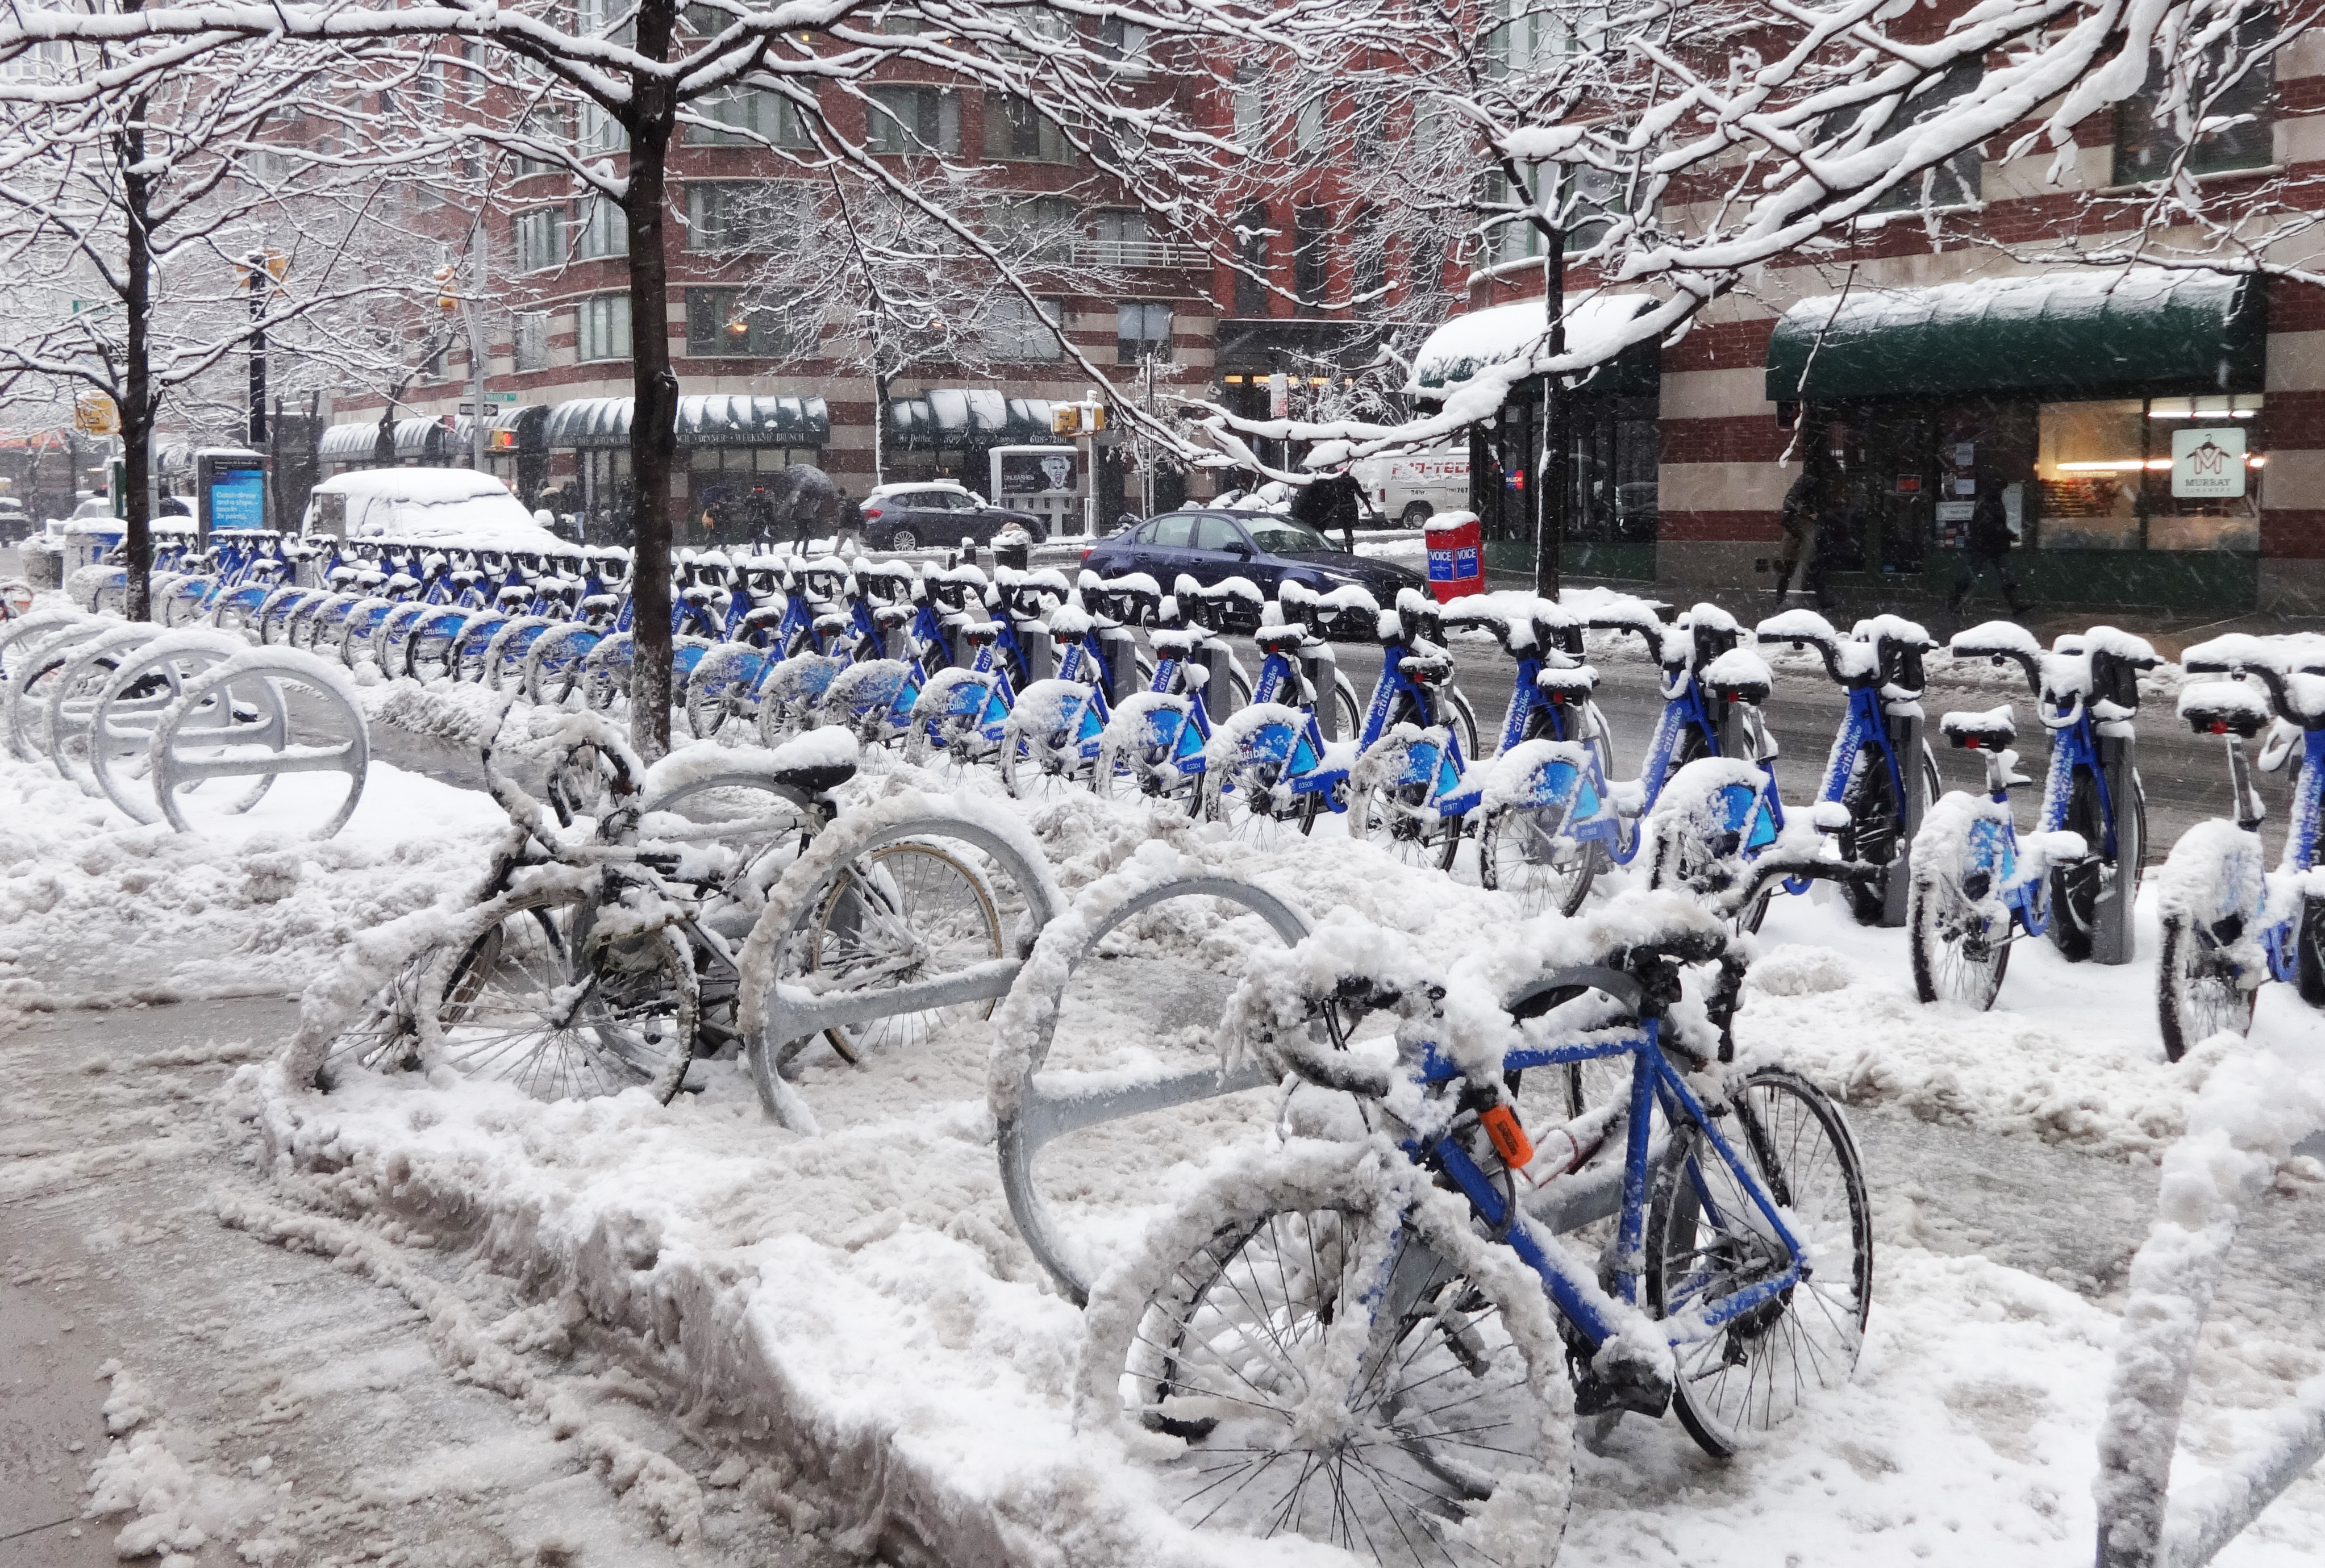 Citi Bikes in snow 2-3-2014